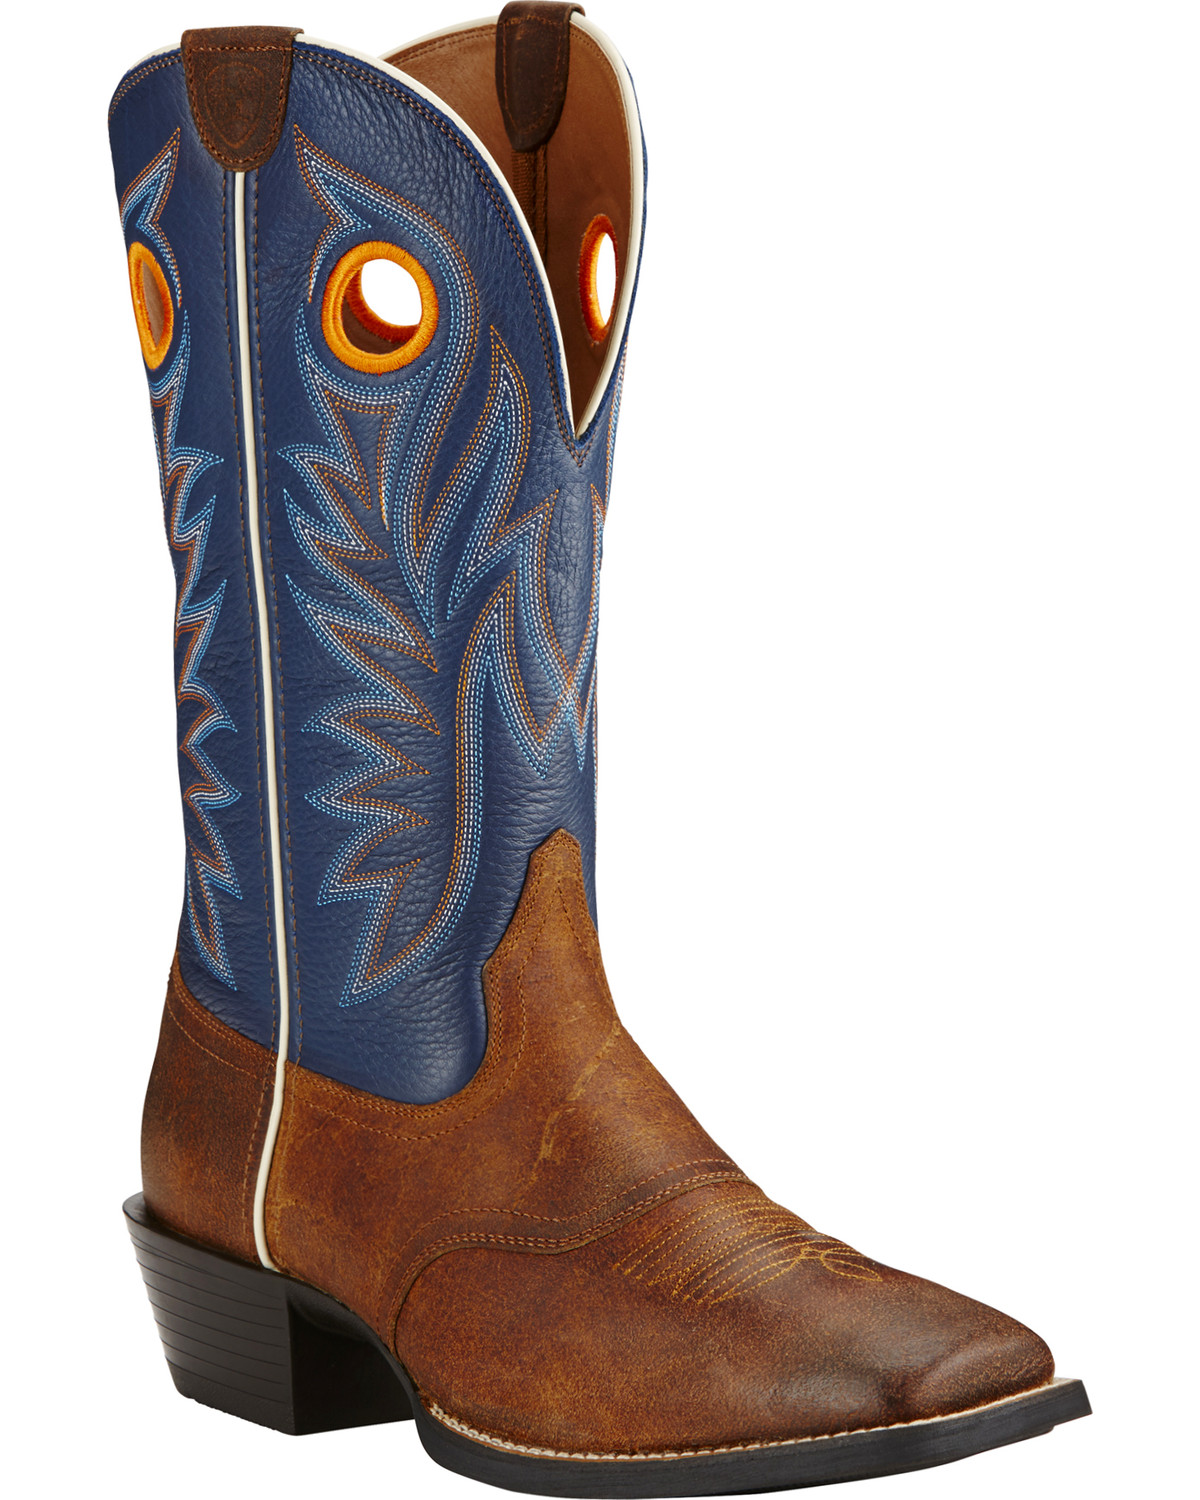 Ariat Federal Blue Sport Outrider Cowboy Boots - Square Toe | Sheplers